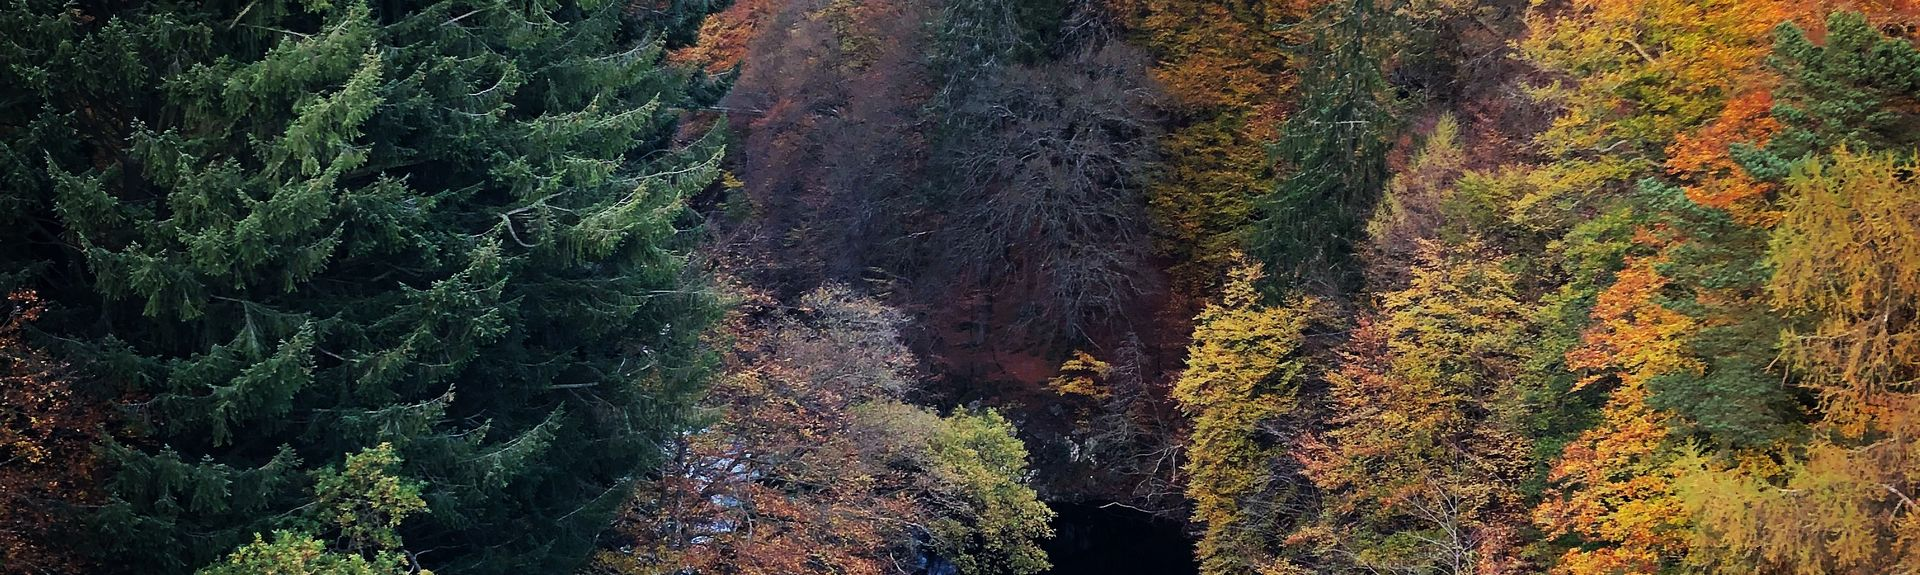 Strathtay, Pitlochry, Perth and Kinross, UK